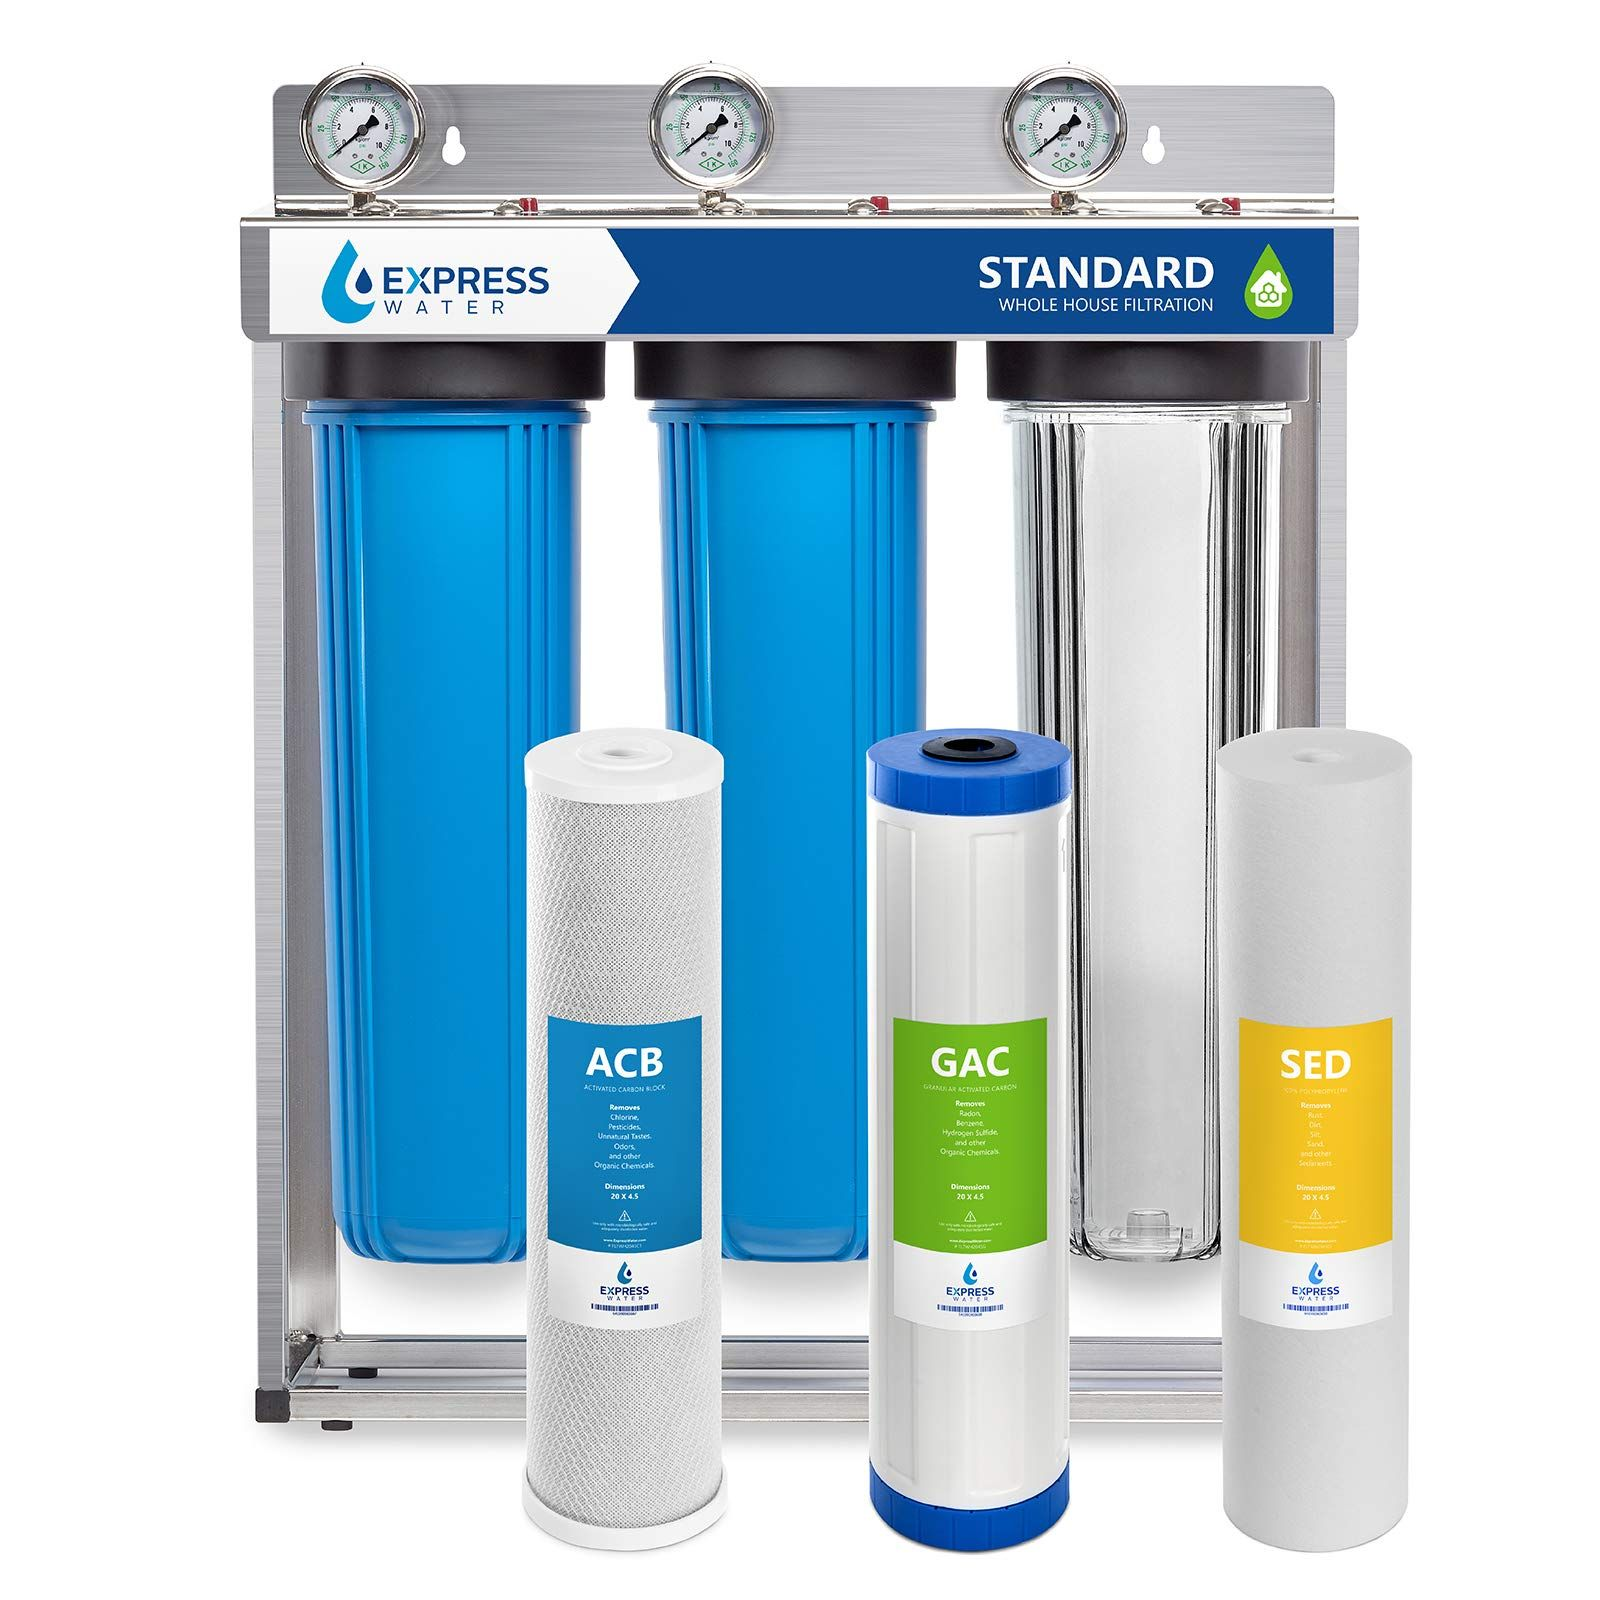 Express Water Whole House Water Home Water Filtration Whole House Water Filter House Water Filter